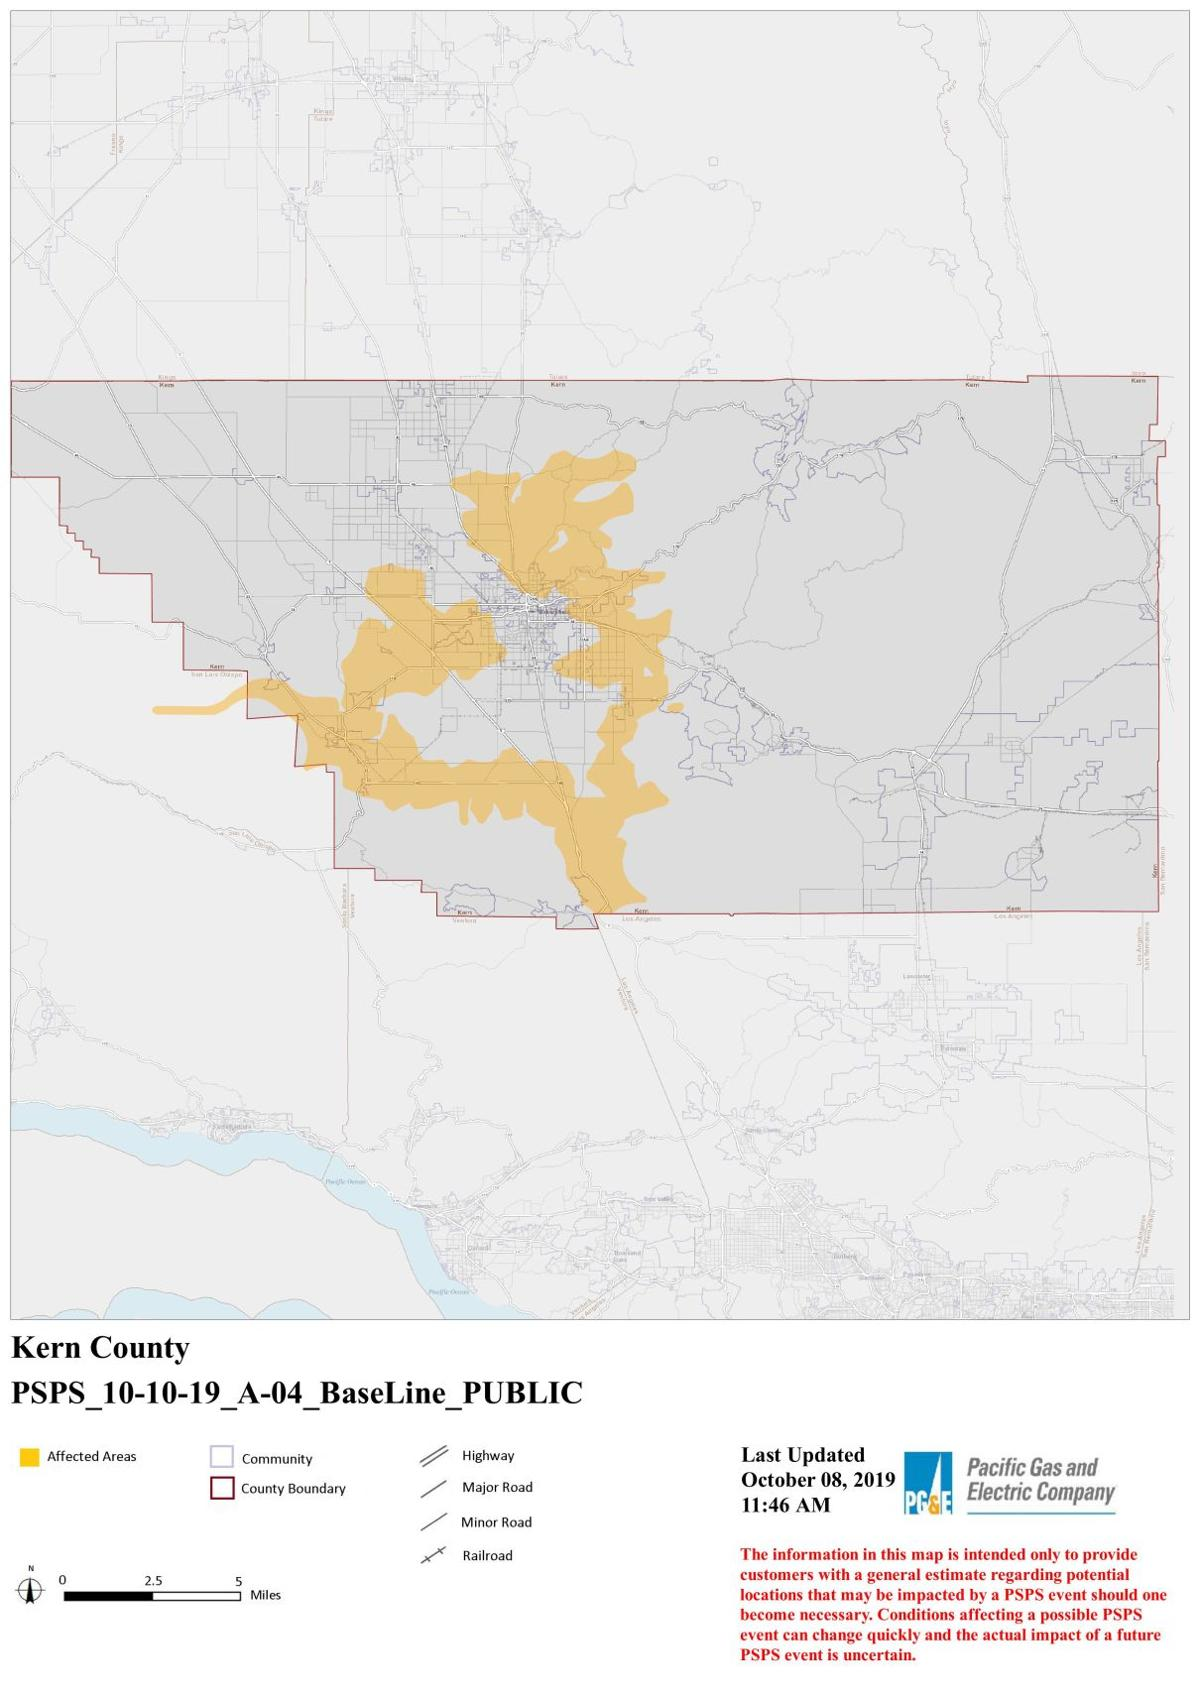 Download The Kern County Possible Outage Map Bakersfield Com